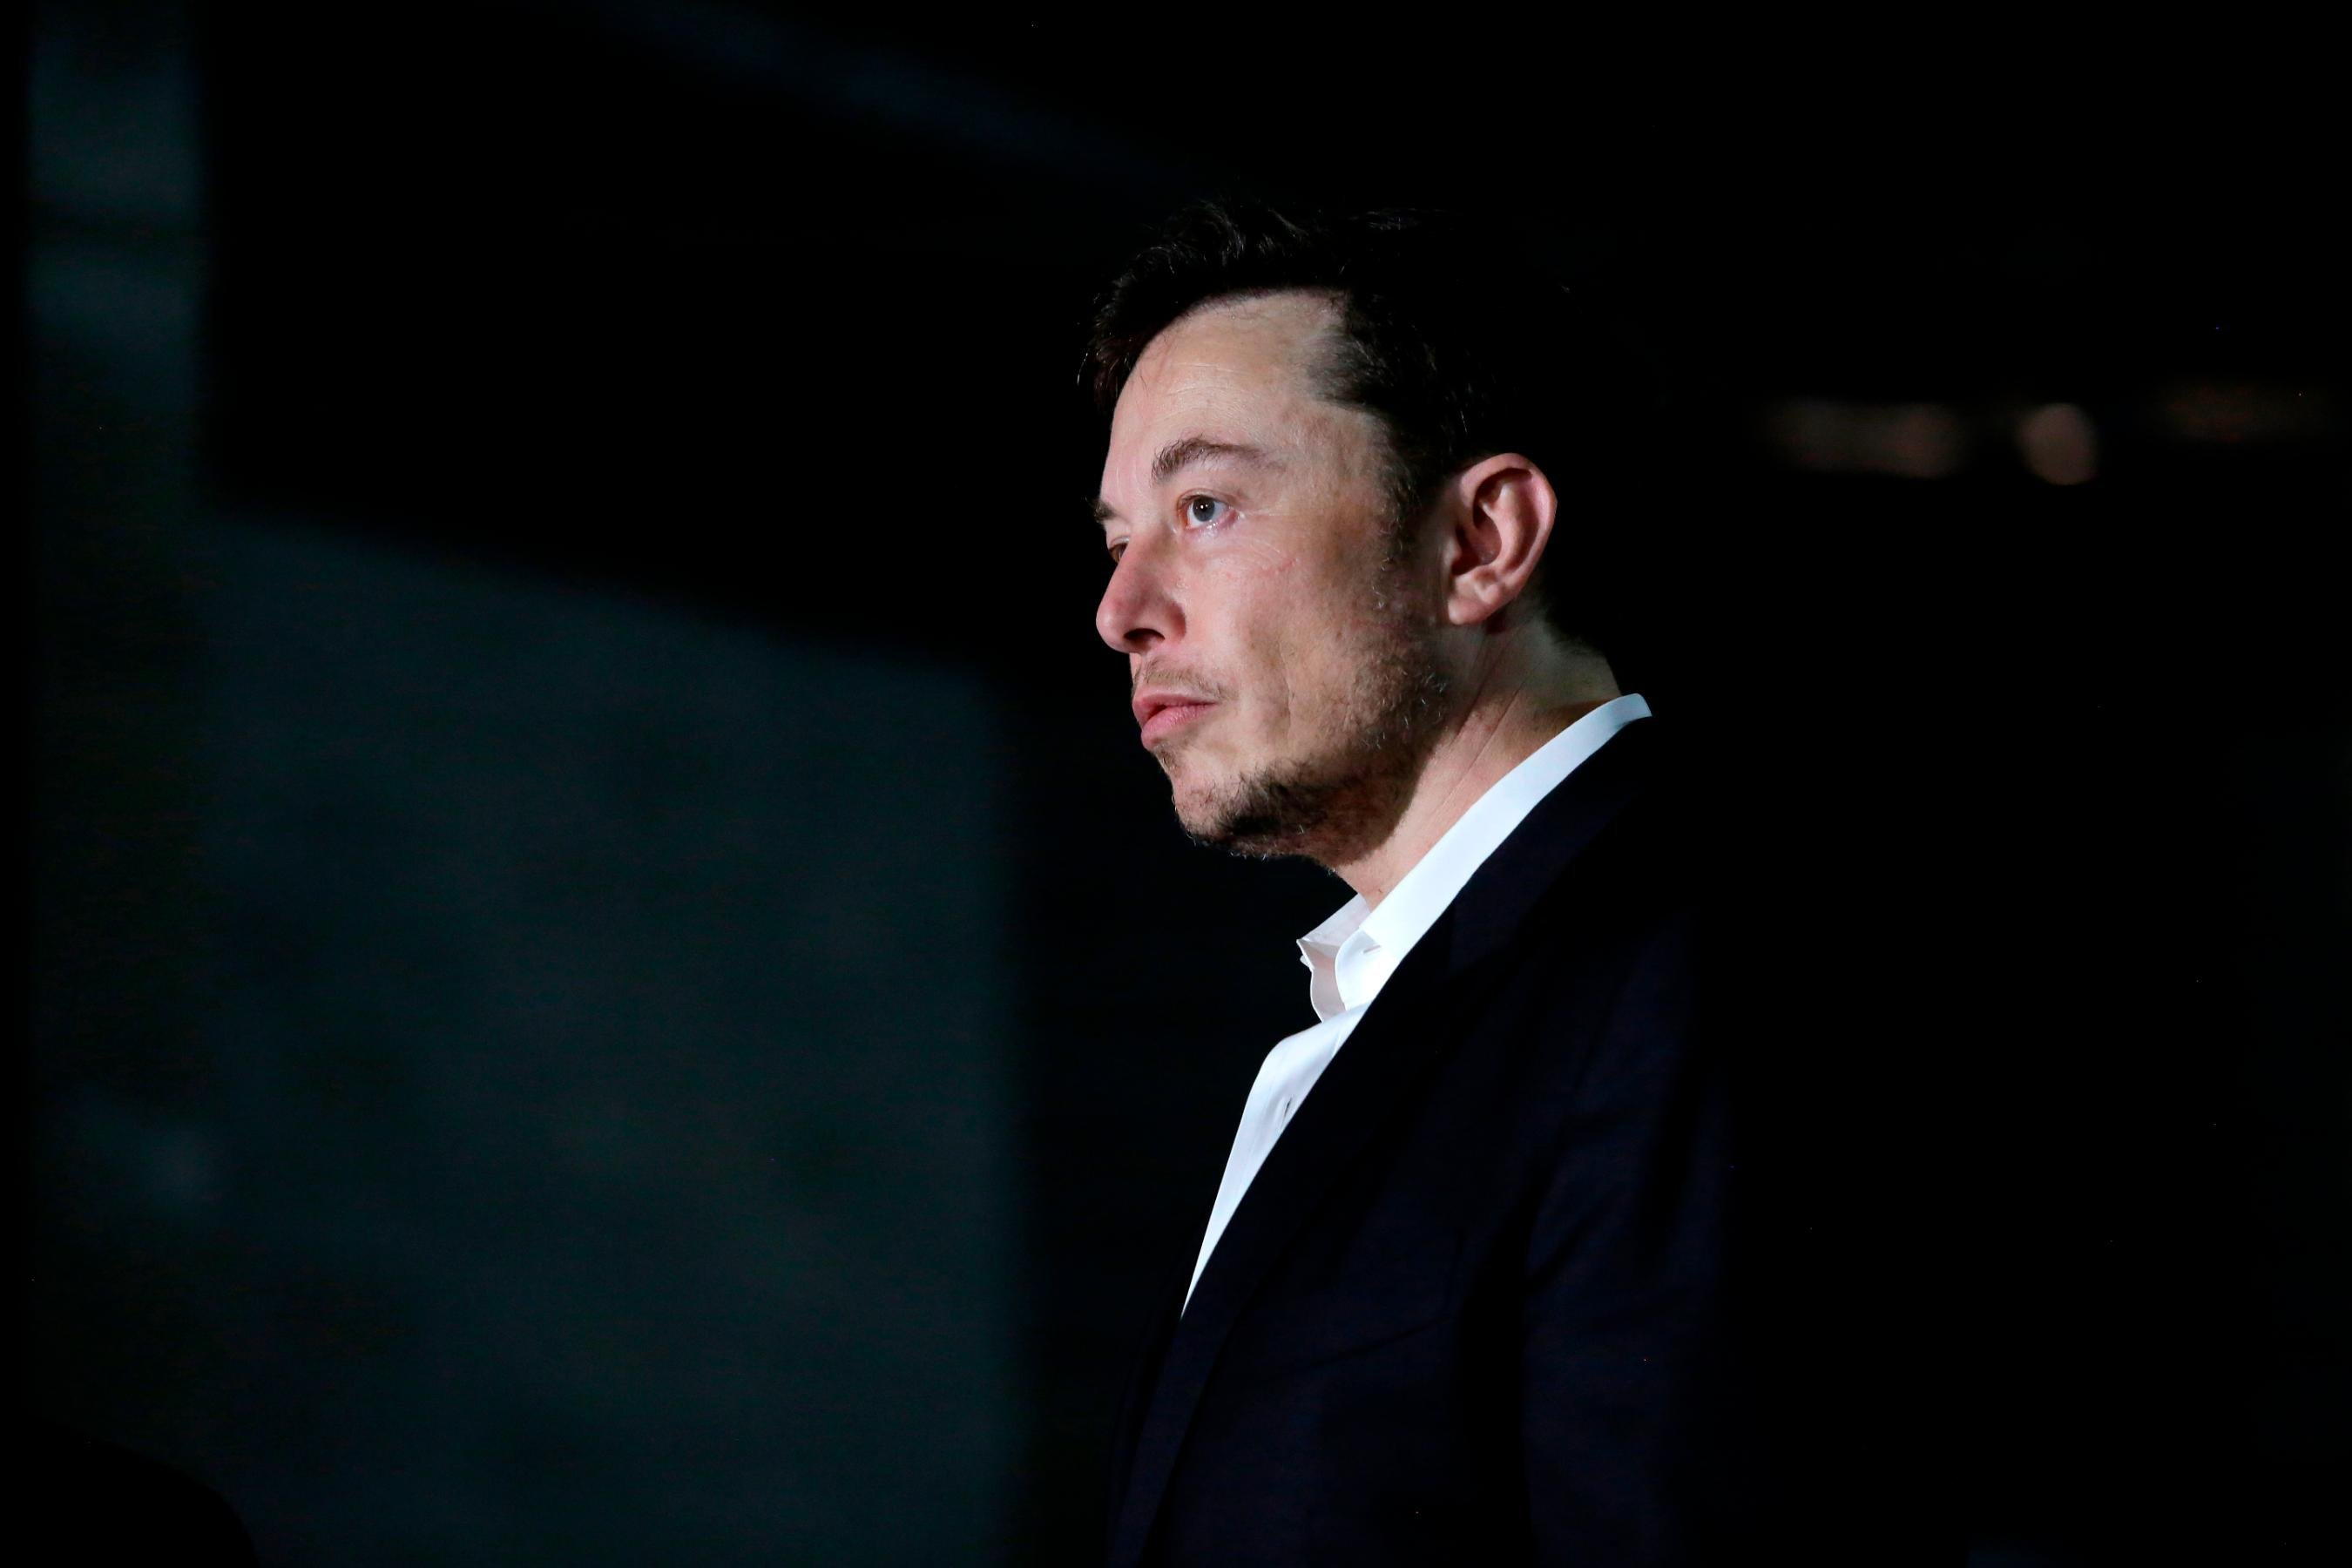 Tesla board will have to defend Elon Musk's massive compensation package, judge says